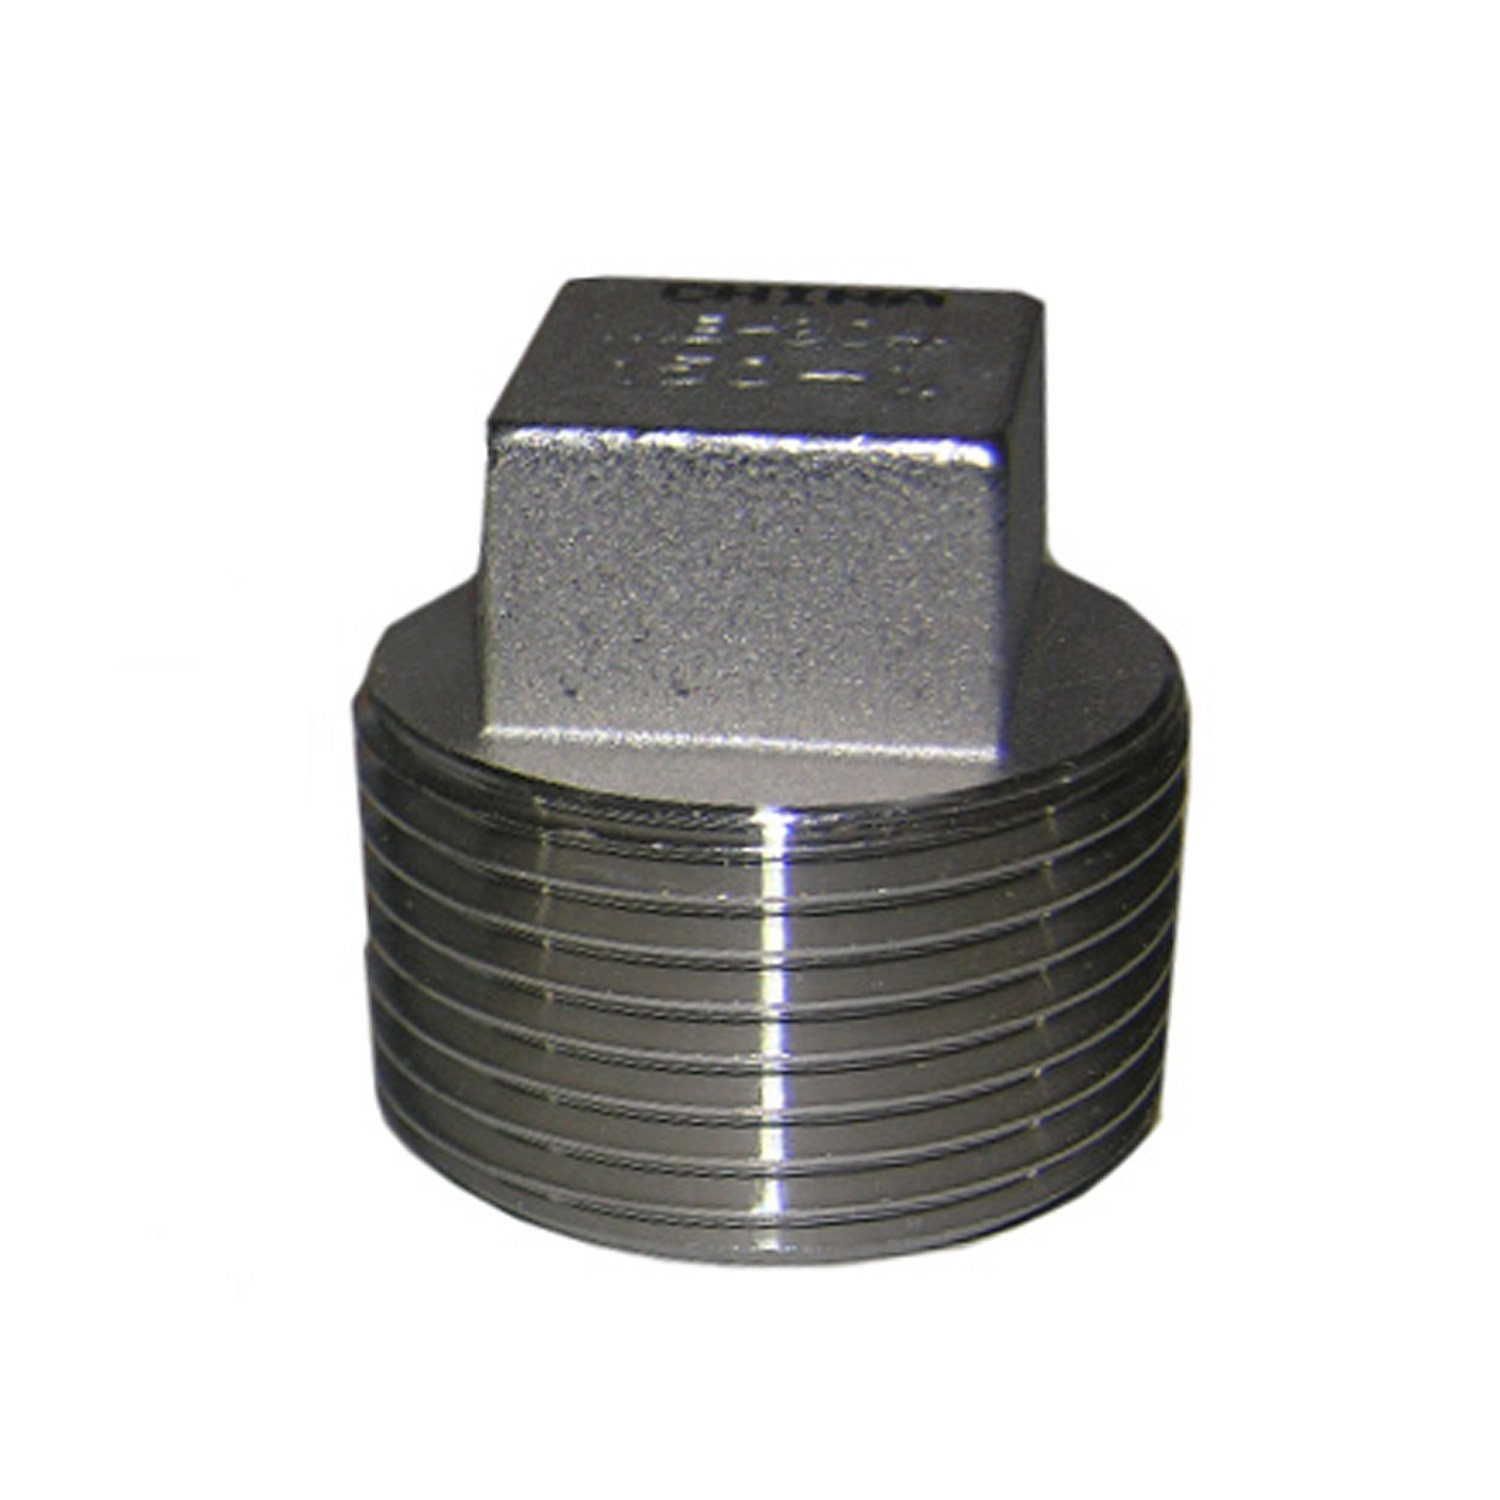 LASCO 32-2989 3//4-Inch Male Pipe Thread Type 304 Stainless Steel Square Head Plug